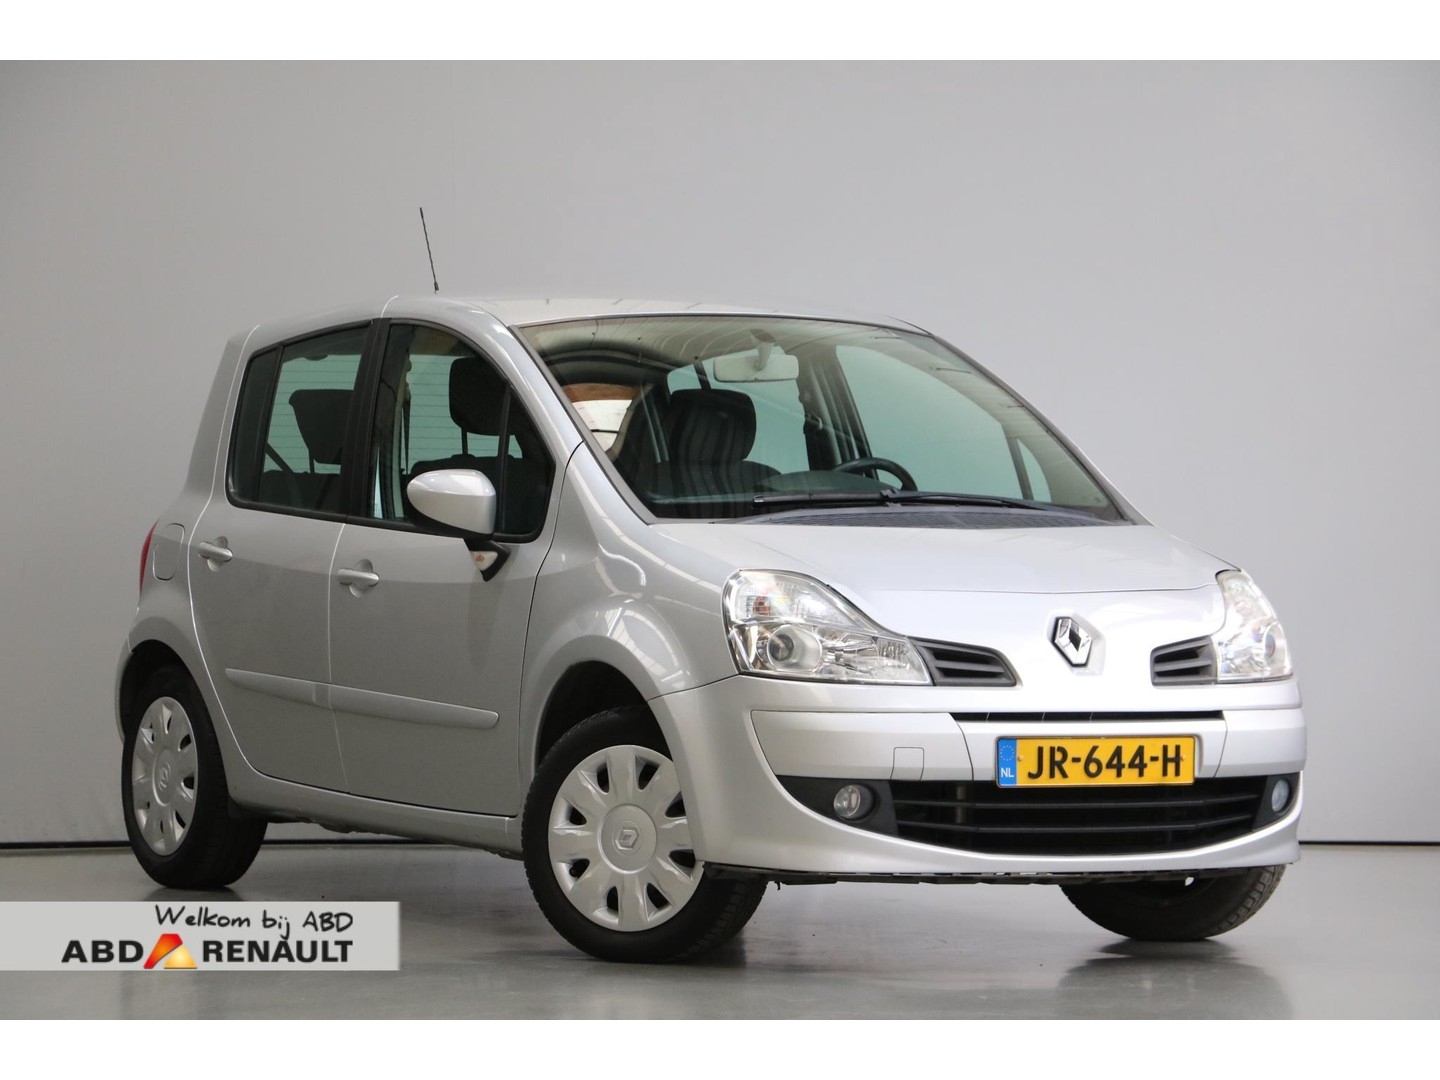 Renault Modus 1.6-16v 110pk automaat night & day